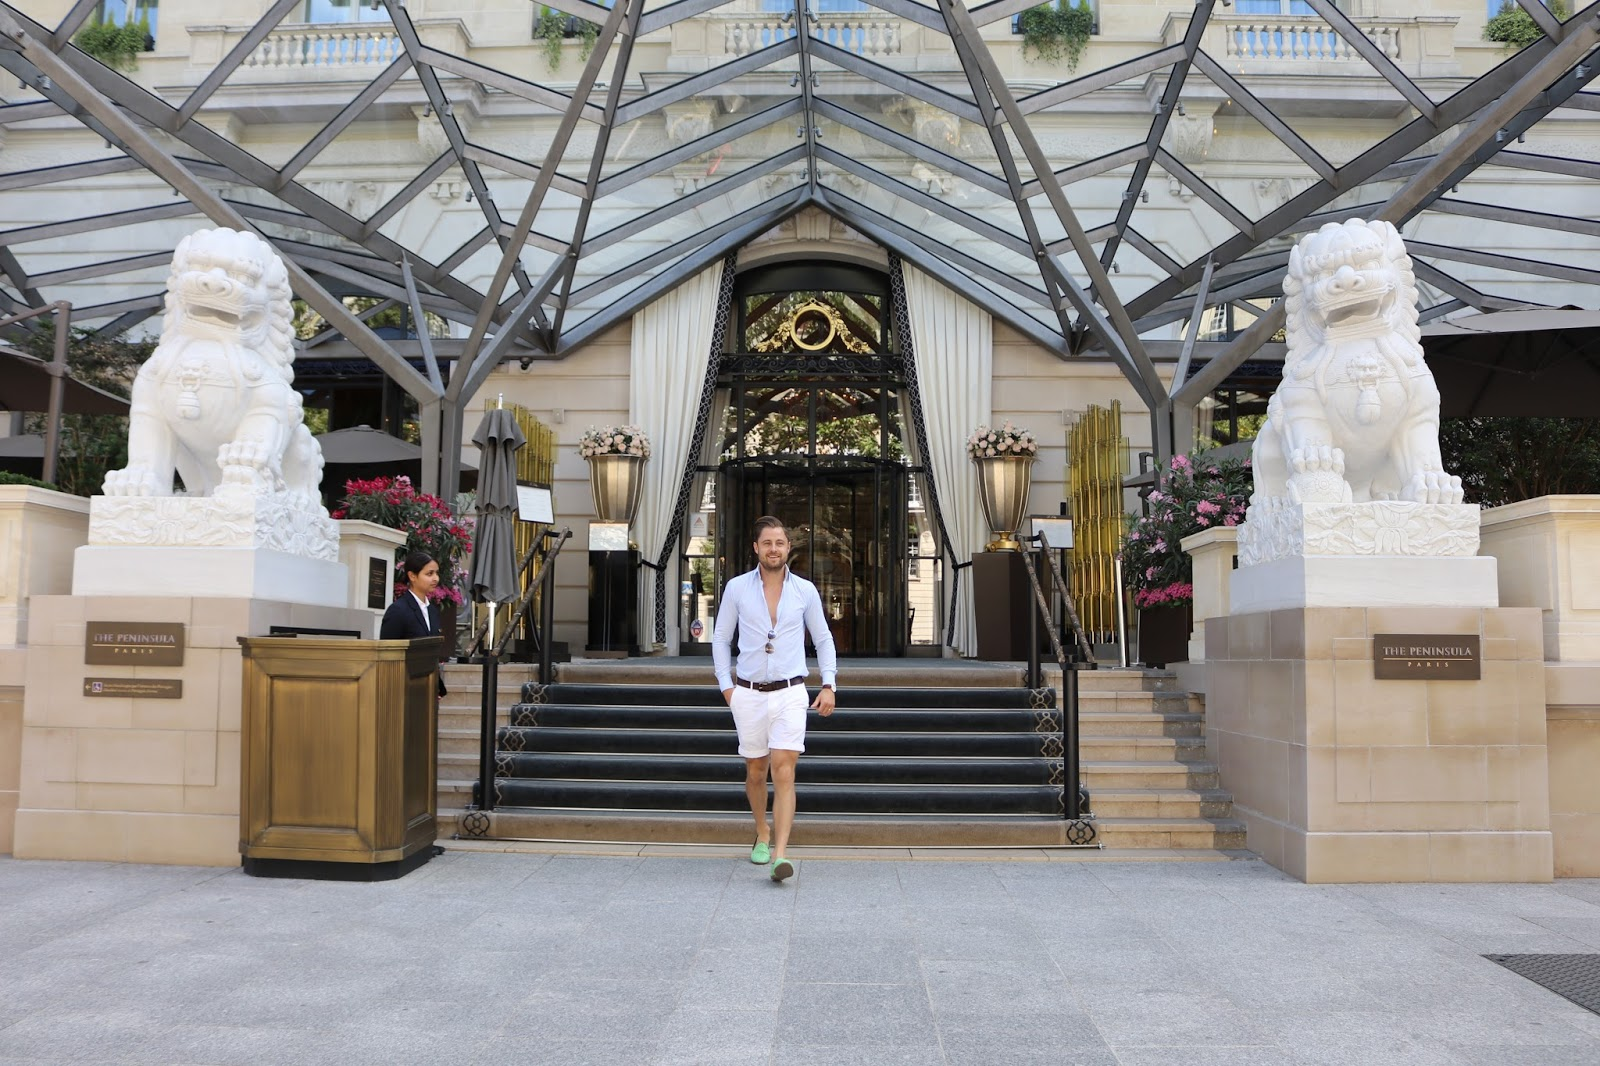 Ben Heath, Twenty First Century Gent outside The Peninsula Paris